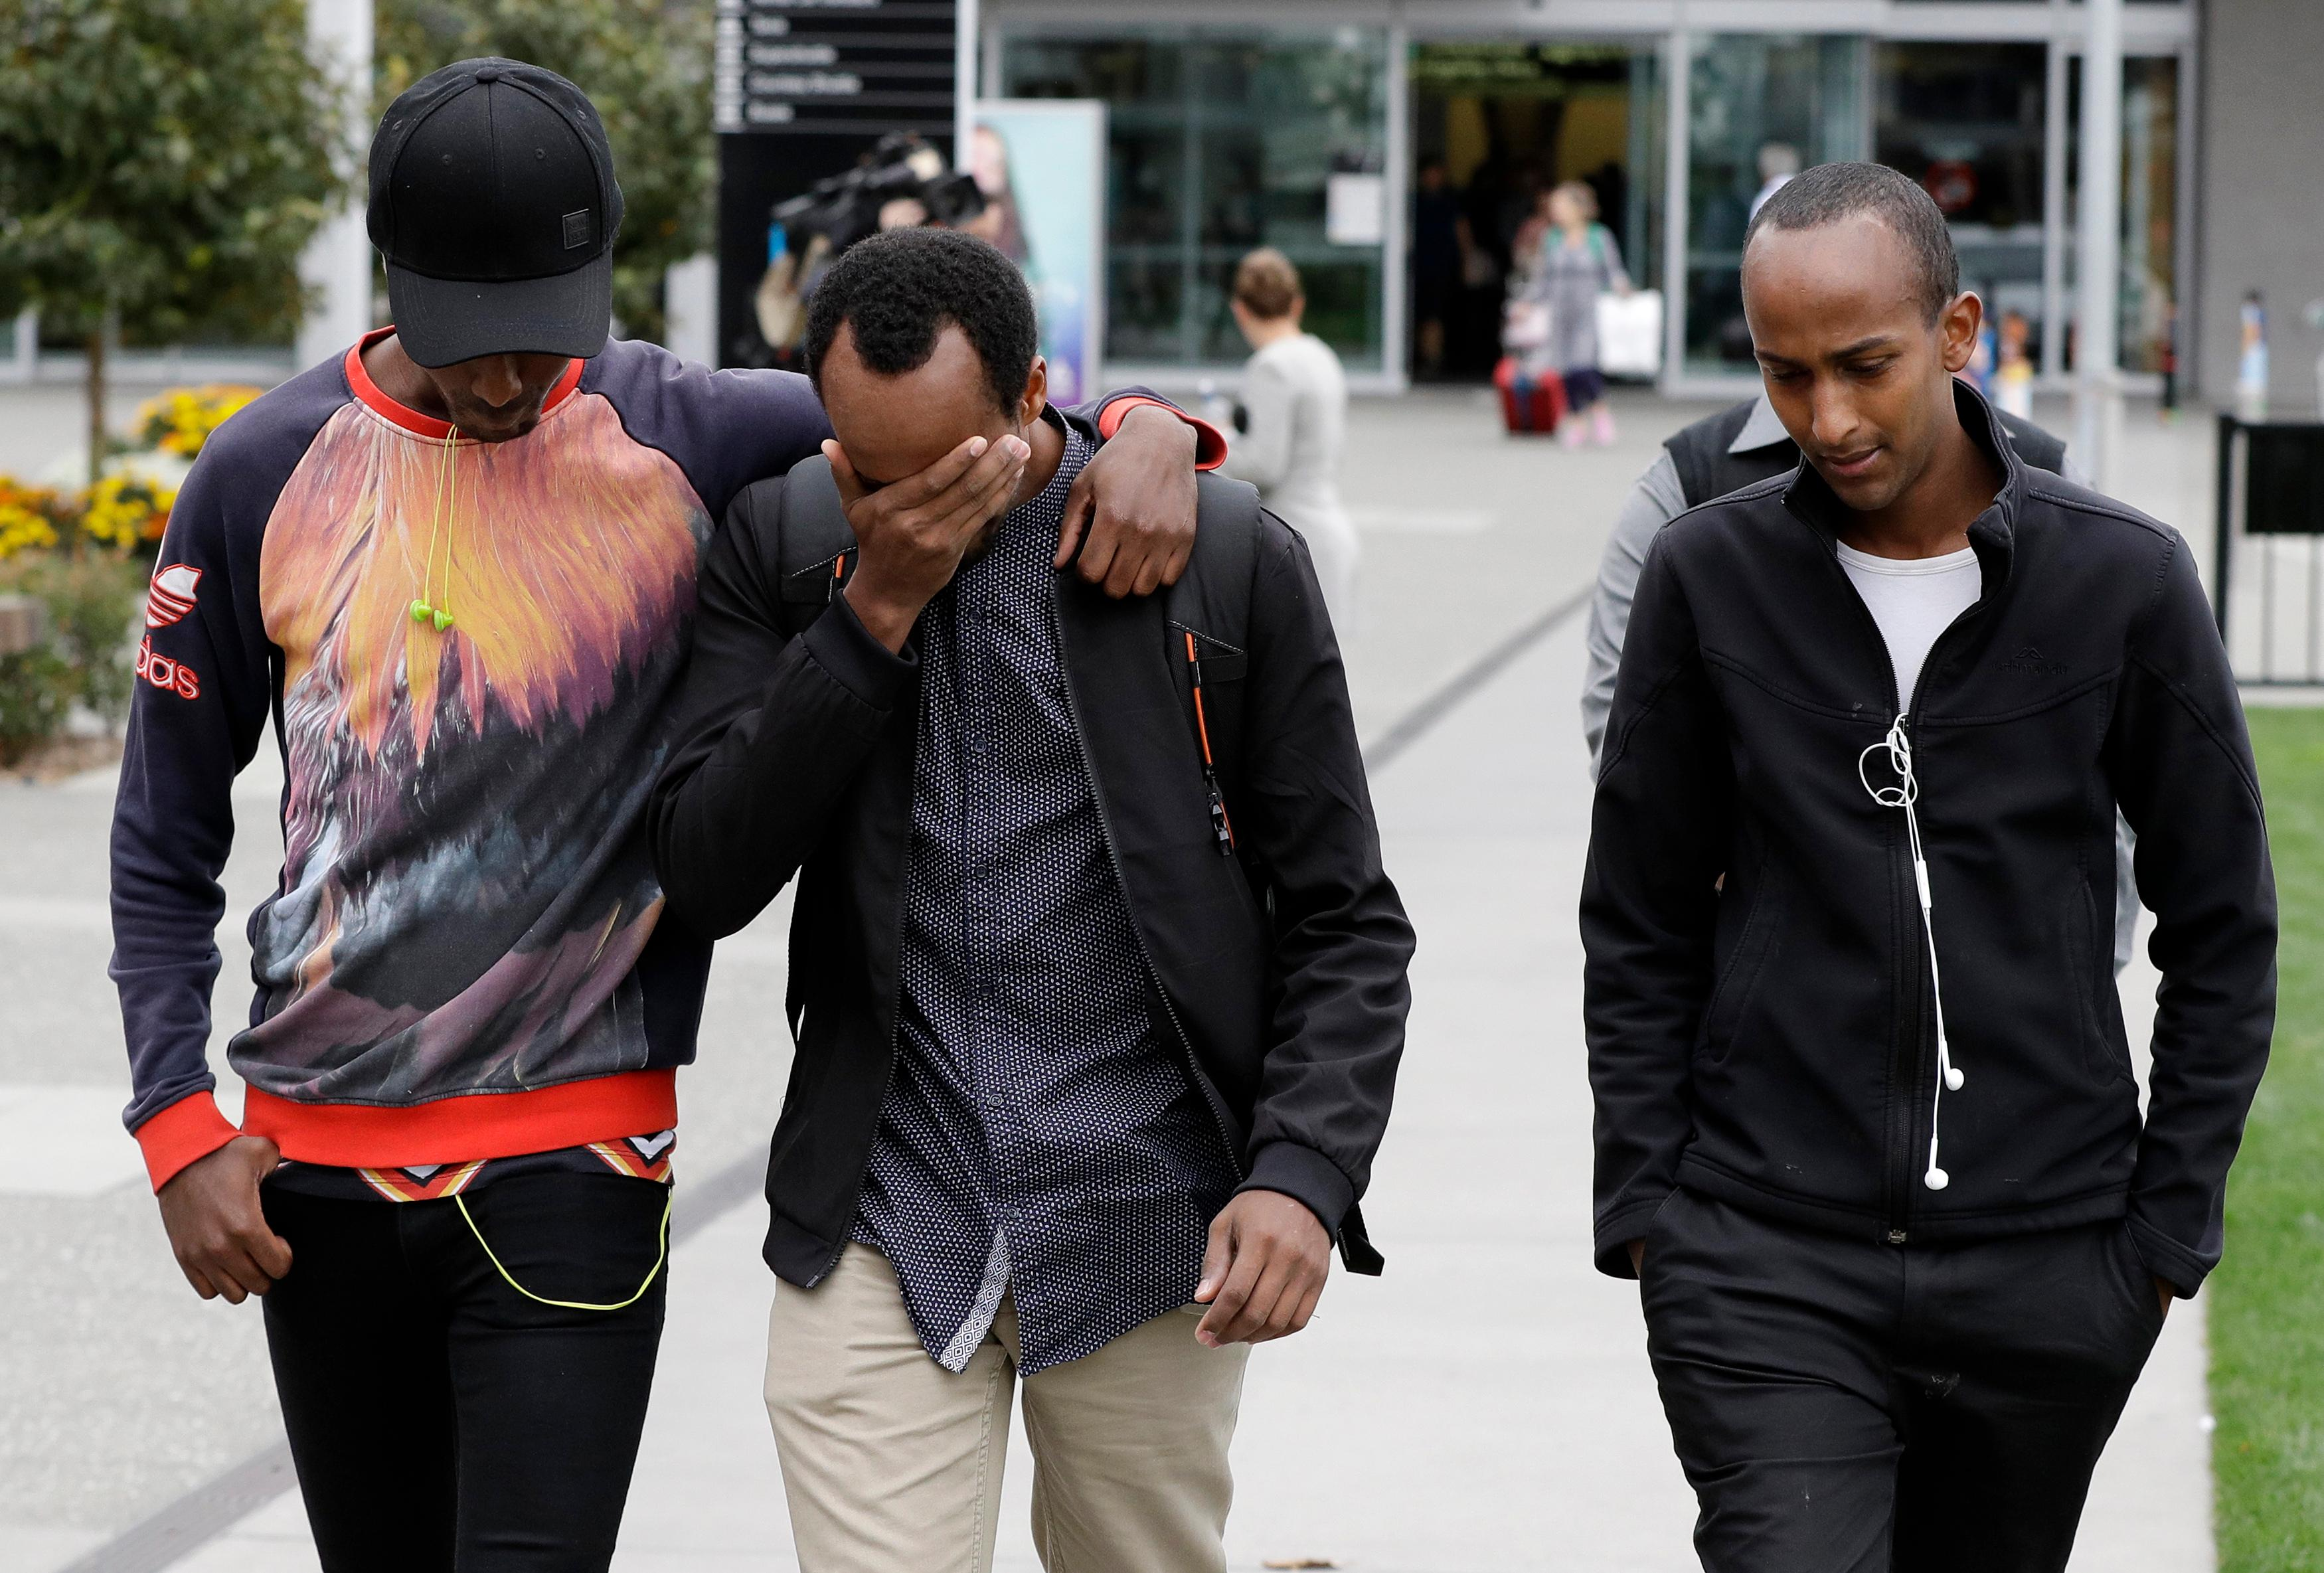 Abdifatah Ibrahim, center, and his brother Abdi, right, walk with an unidentified friend in Christchurch, New Zealand, Sunday, March 17, 2019. (AP Photo/Mark Baker)